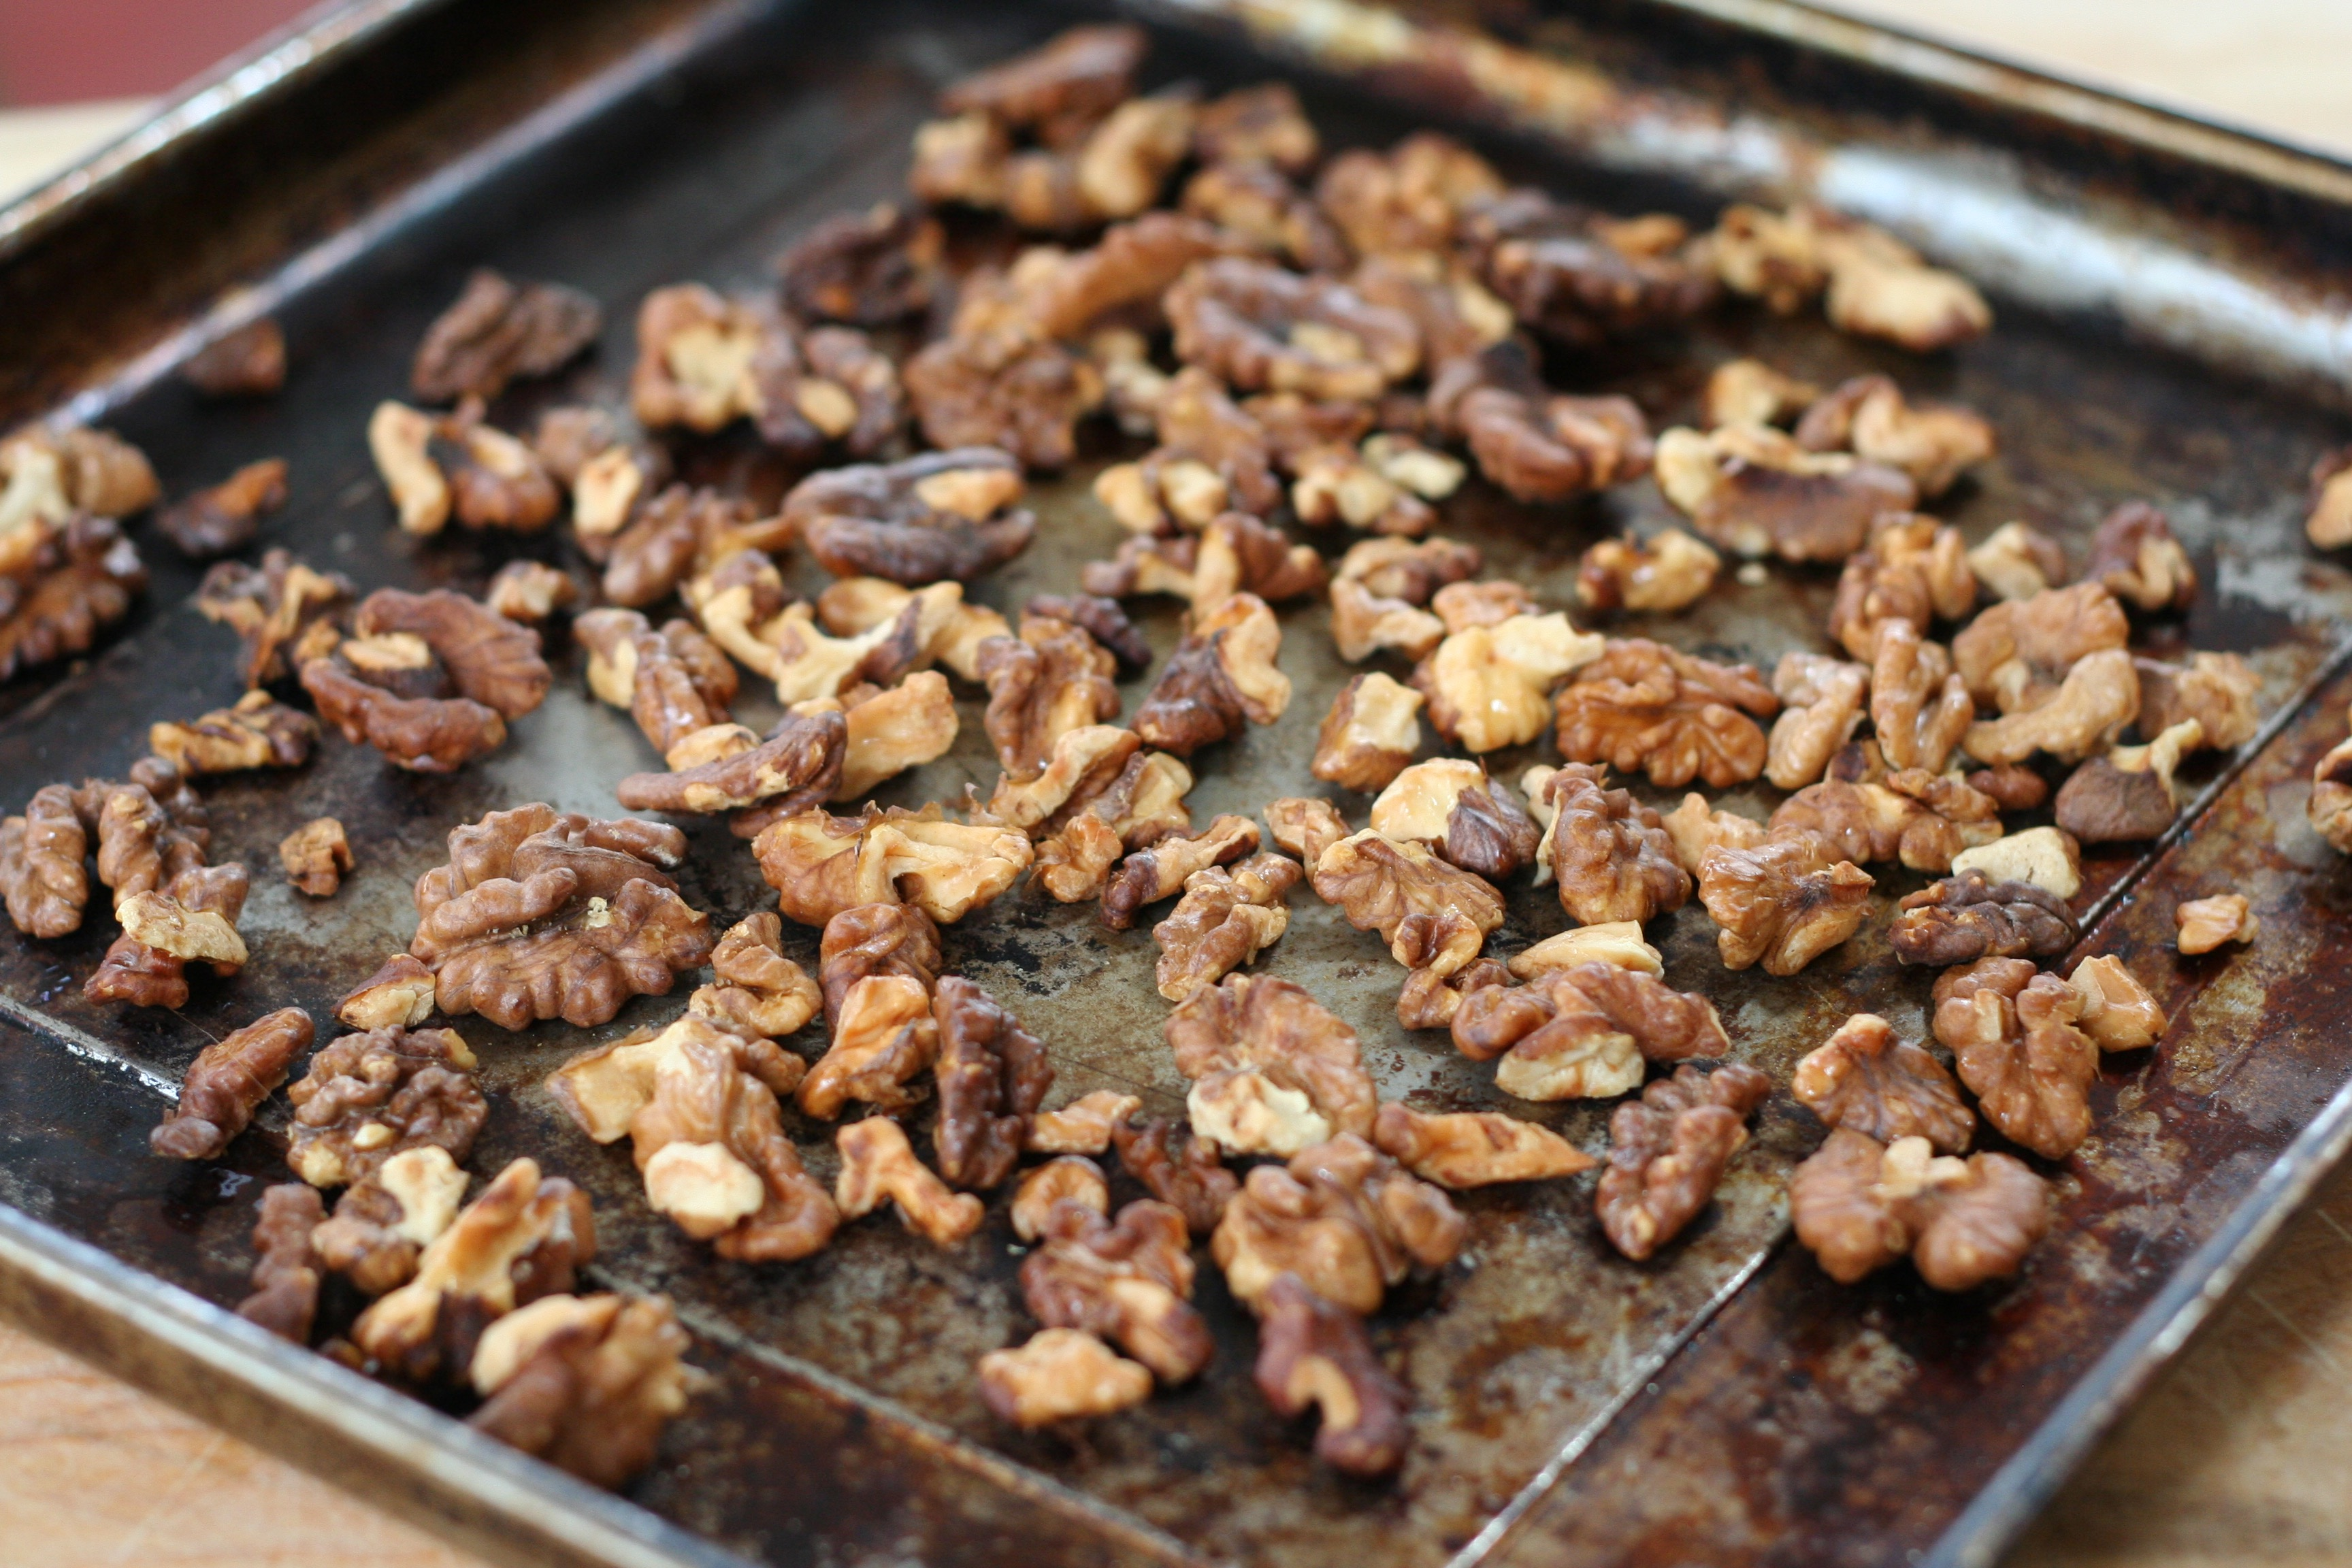 Baking Sheet of Toasted Walnuts